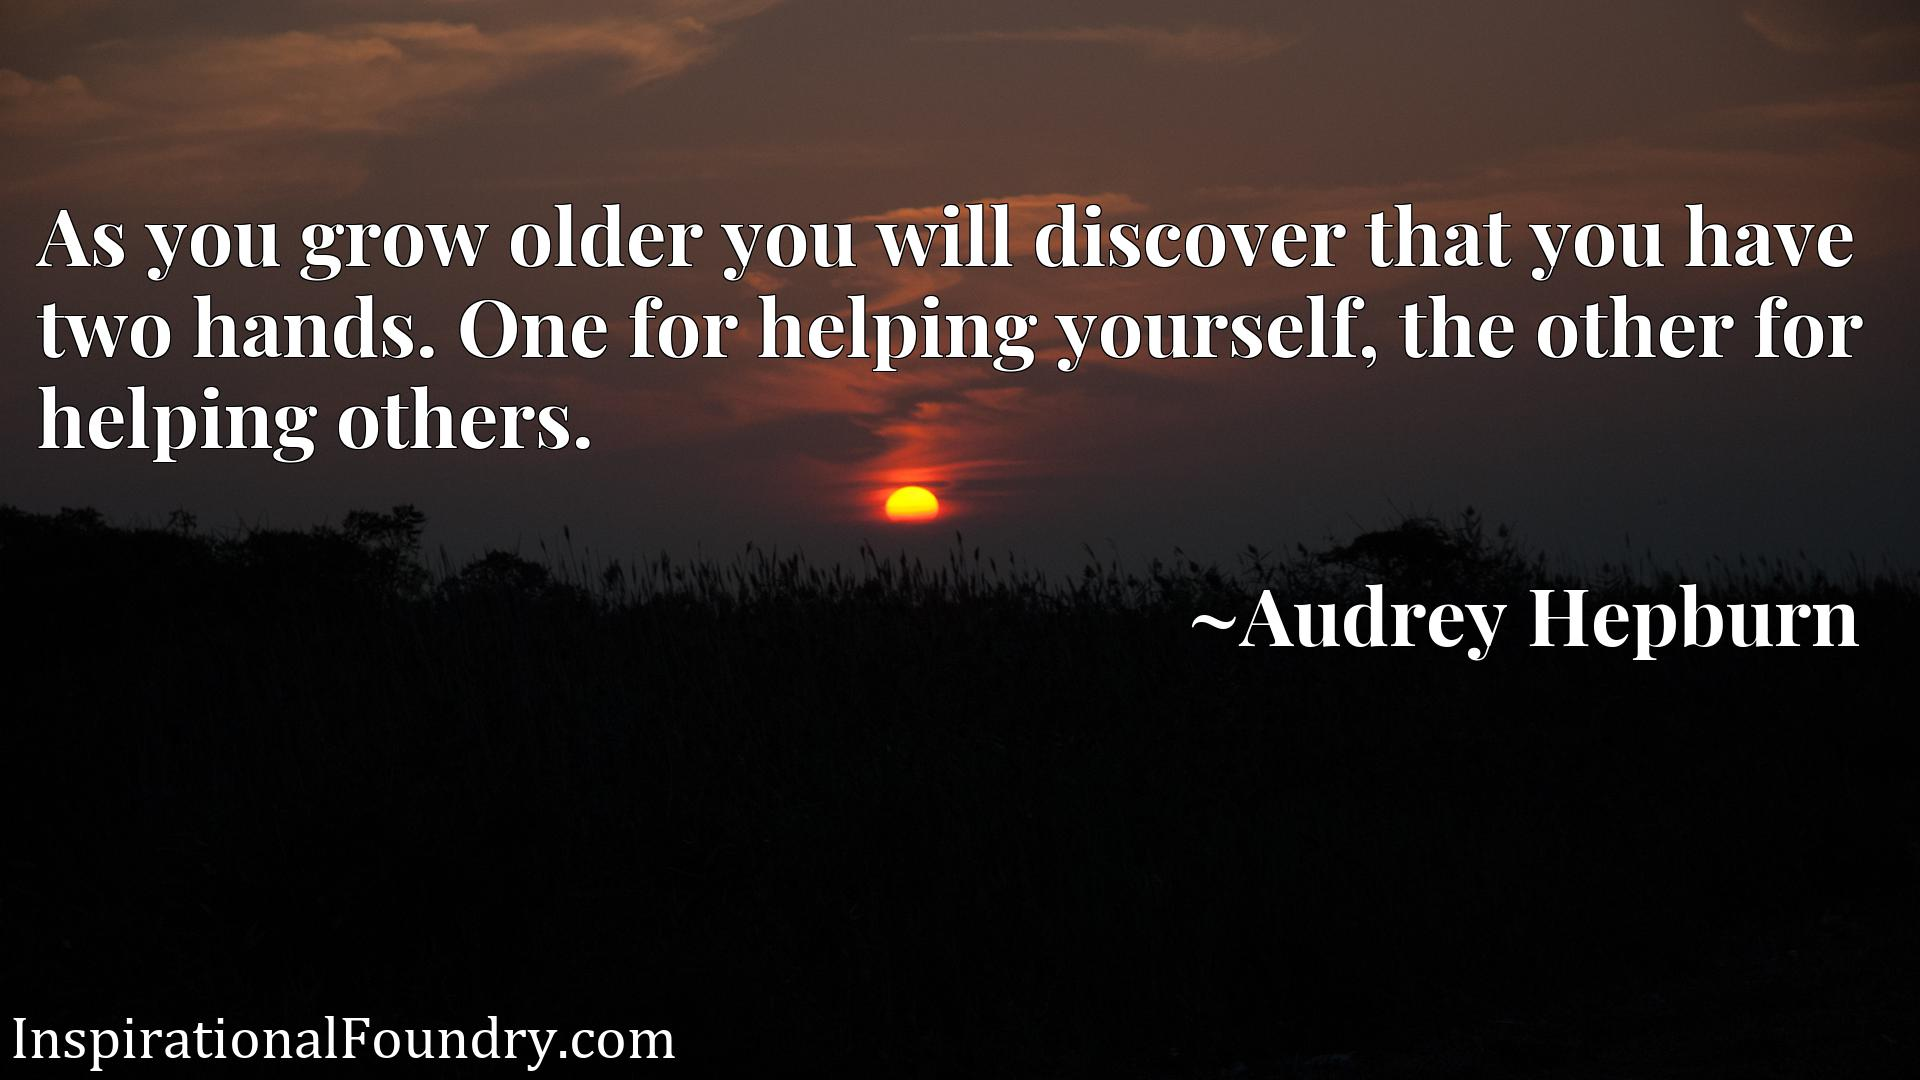 As you grow older you will discover that you have two hands. One for helping yourself, the other for helping others.